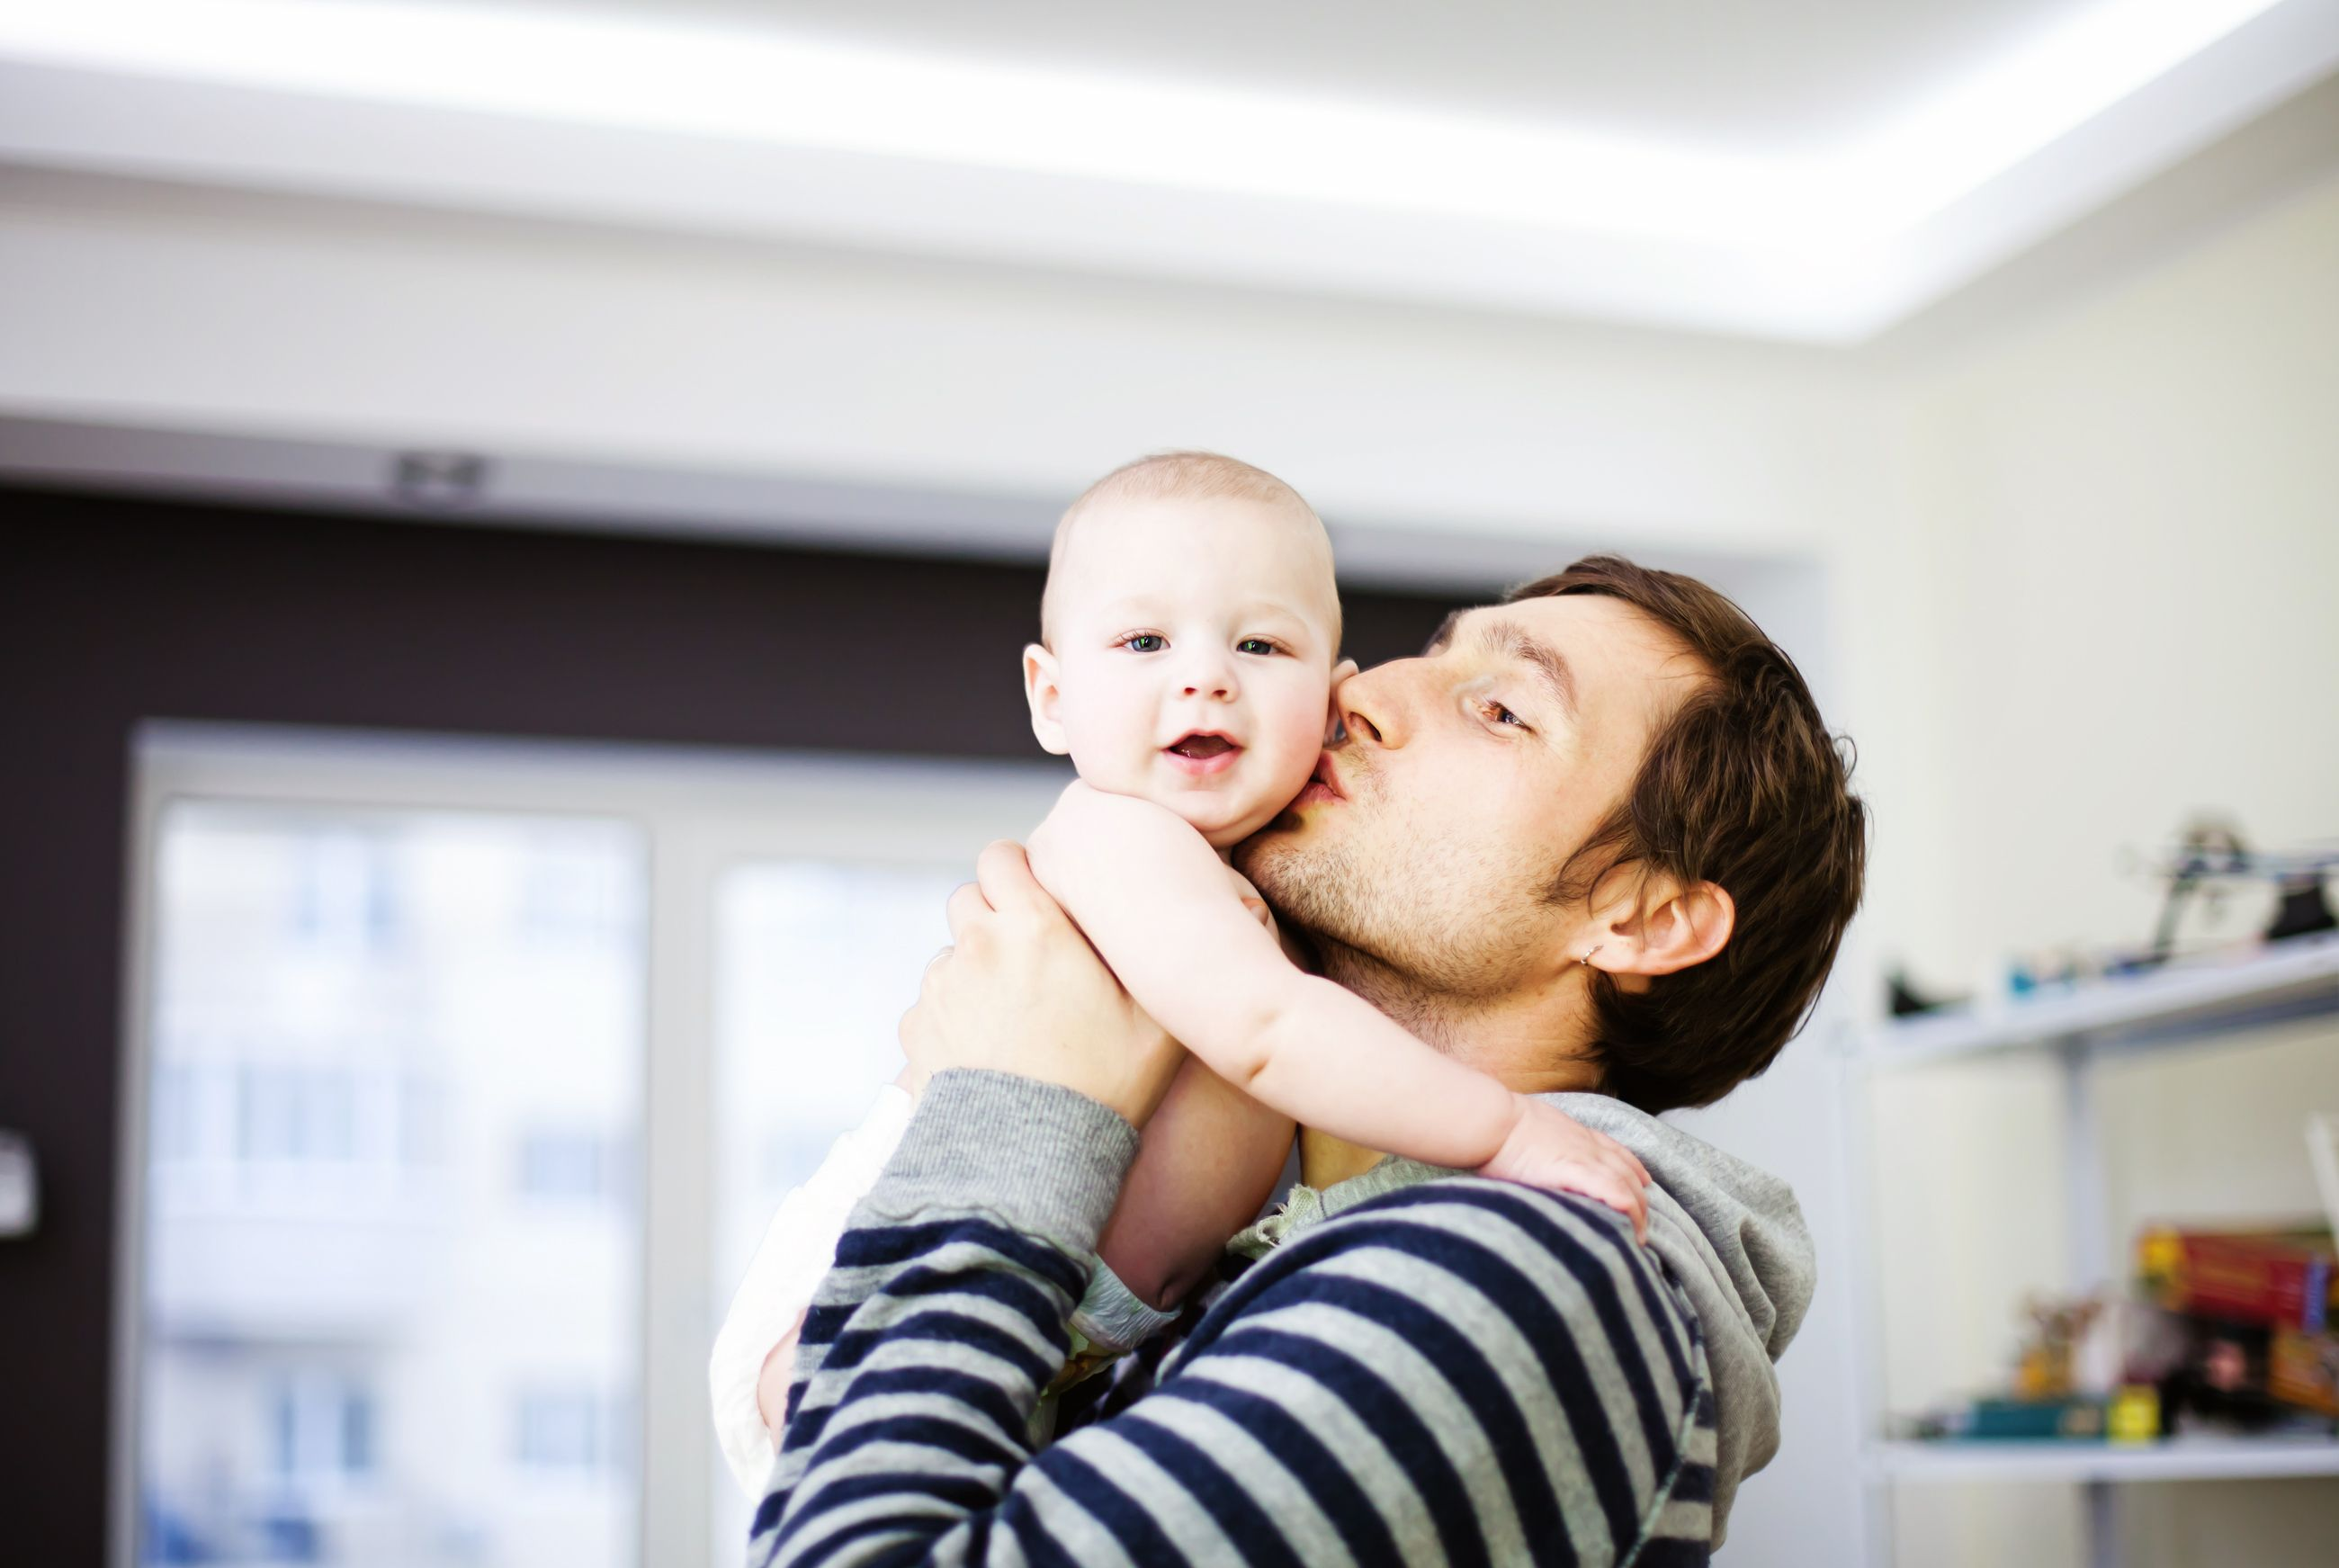 15 Random Facts About Fathers